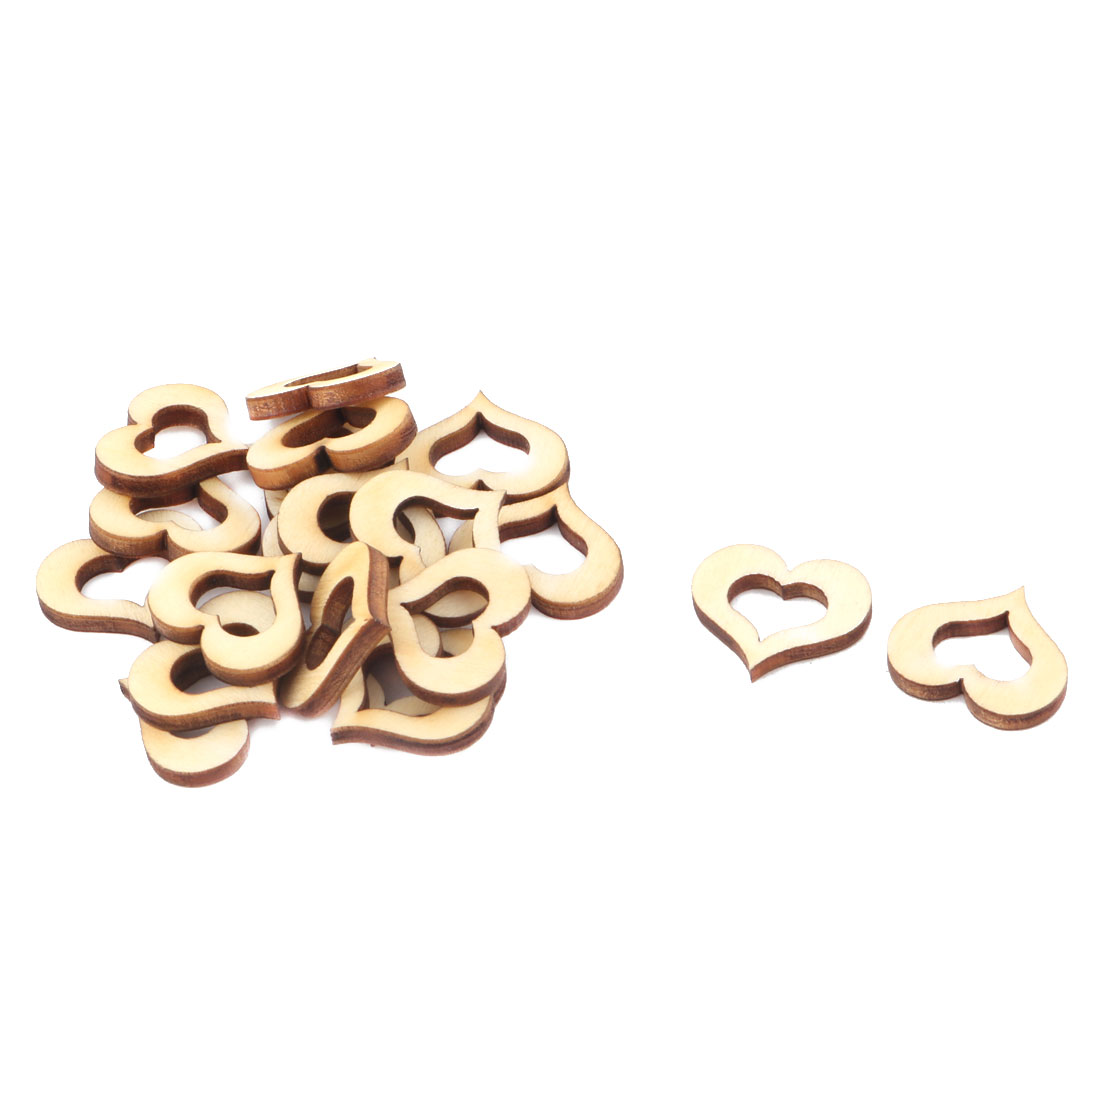 Wooden Love Heart Shaped Hollow Design Wedding Decor Art Craft DIY Accessories Beige 20 x 15mm 20pcs